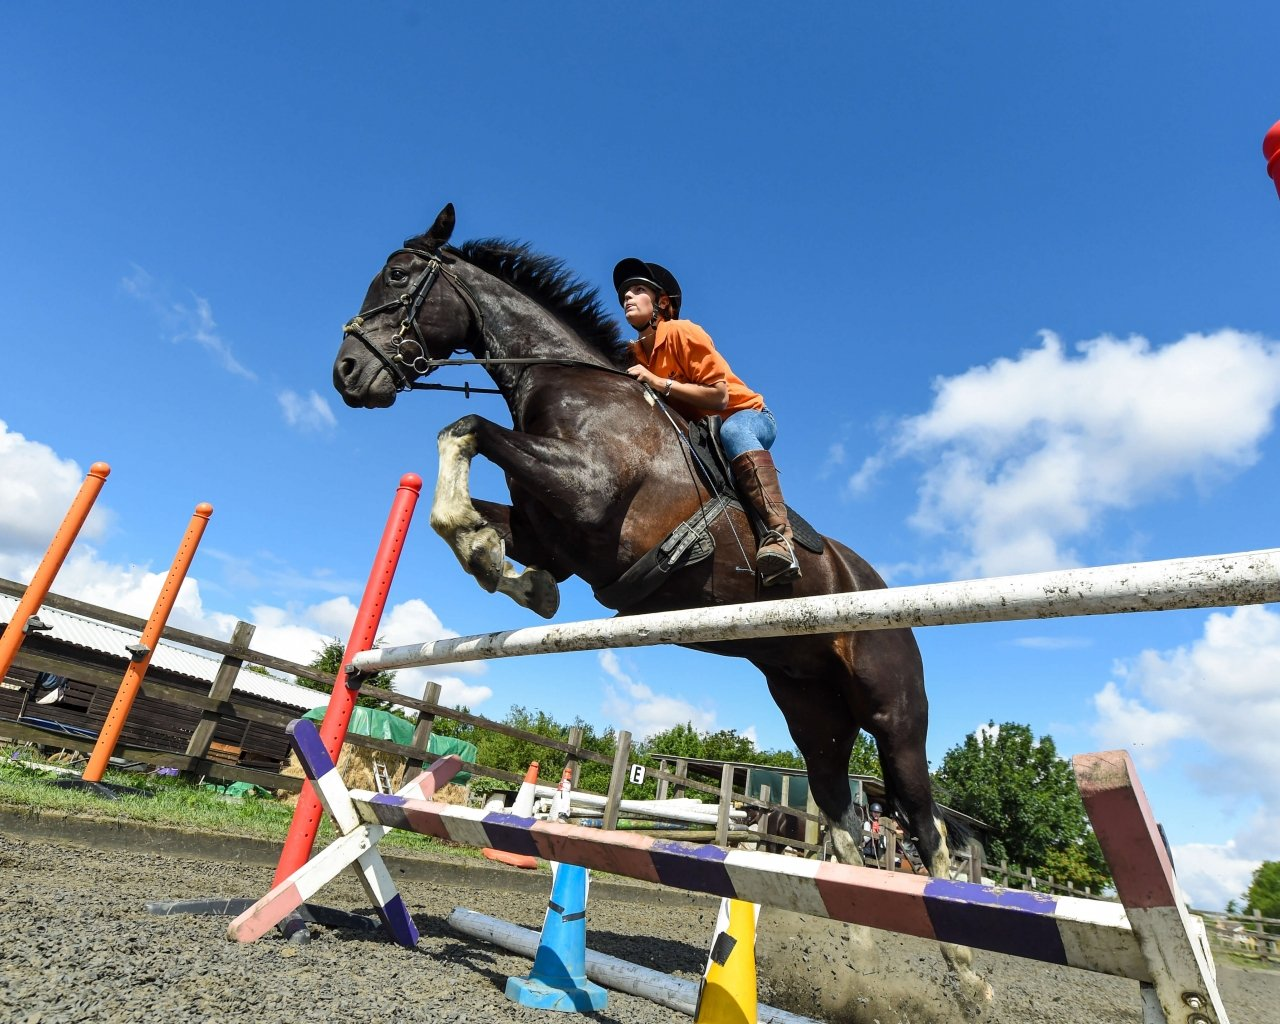 Equestrian Camp in the UK - Summer Horse Camps the UK on